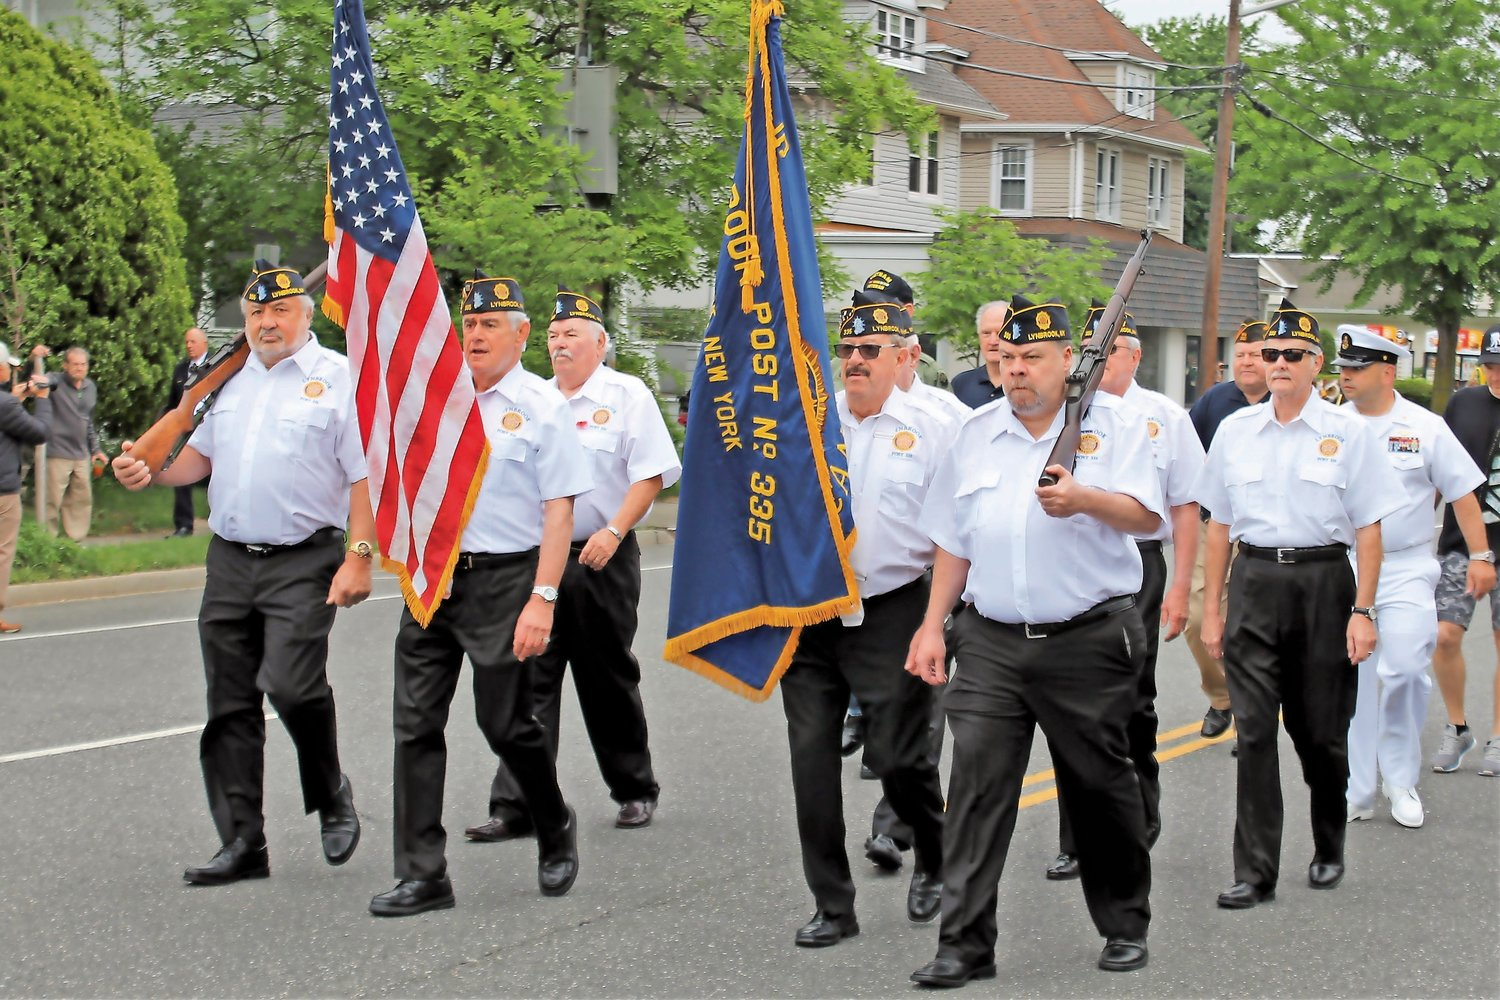 Lynbrook American Legion Post 335 members marched in the annual Memorial Day parade last year.